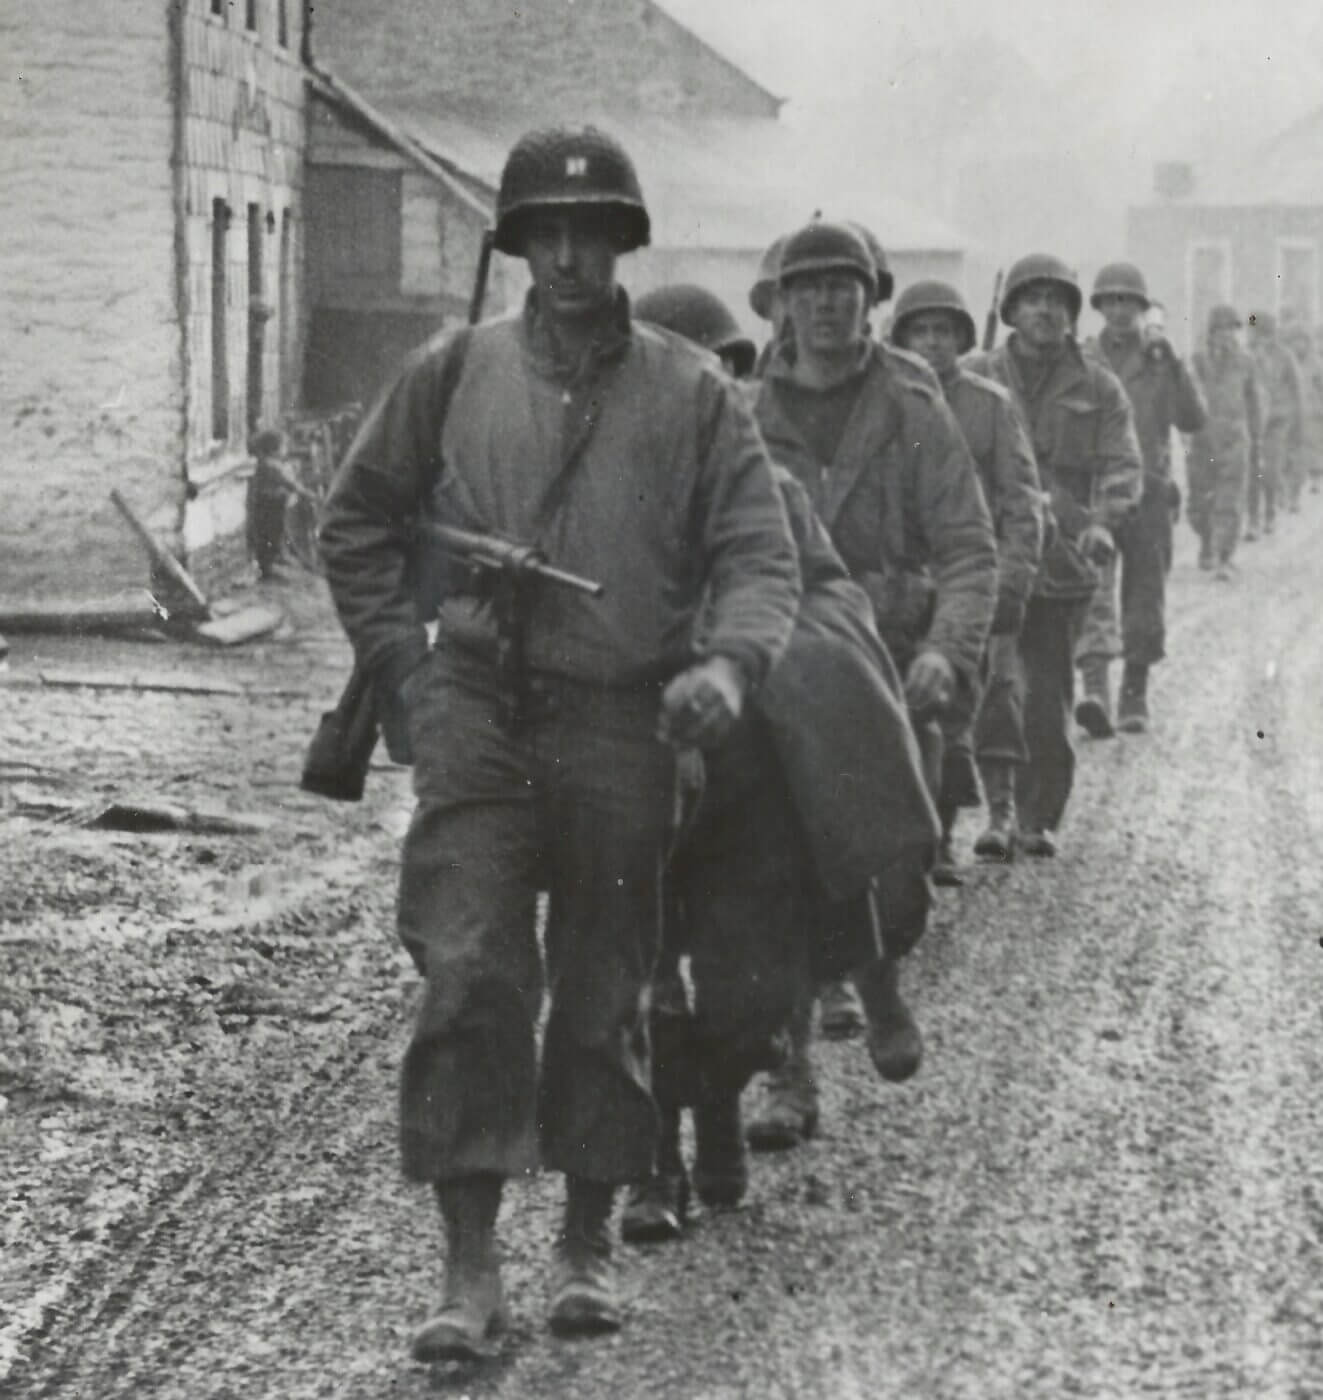 The Battle of the Bulge: M3 SMG leading the march out of St. Vith. Image: NARA